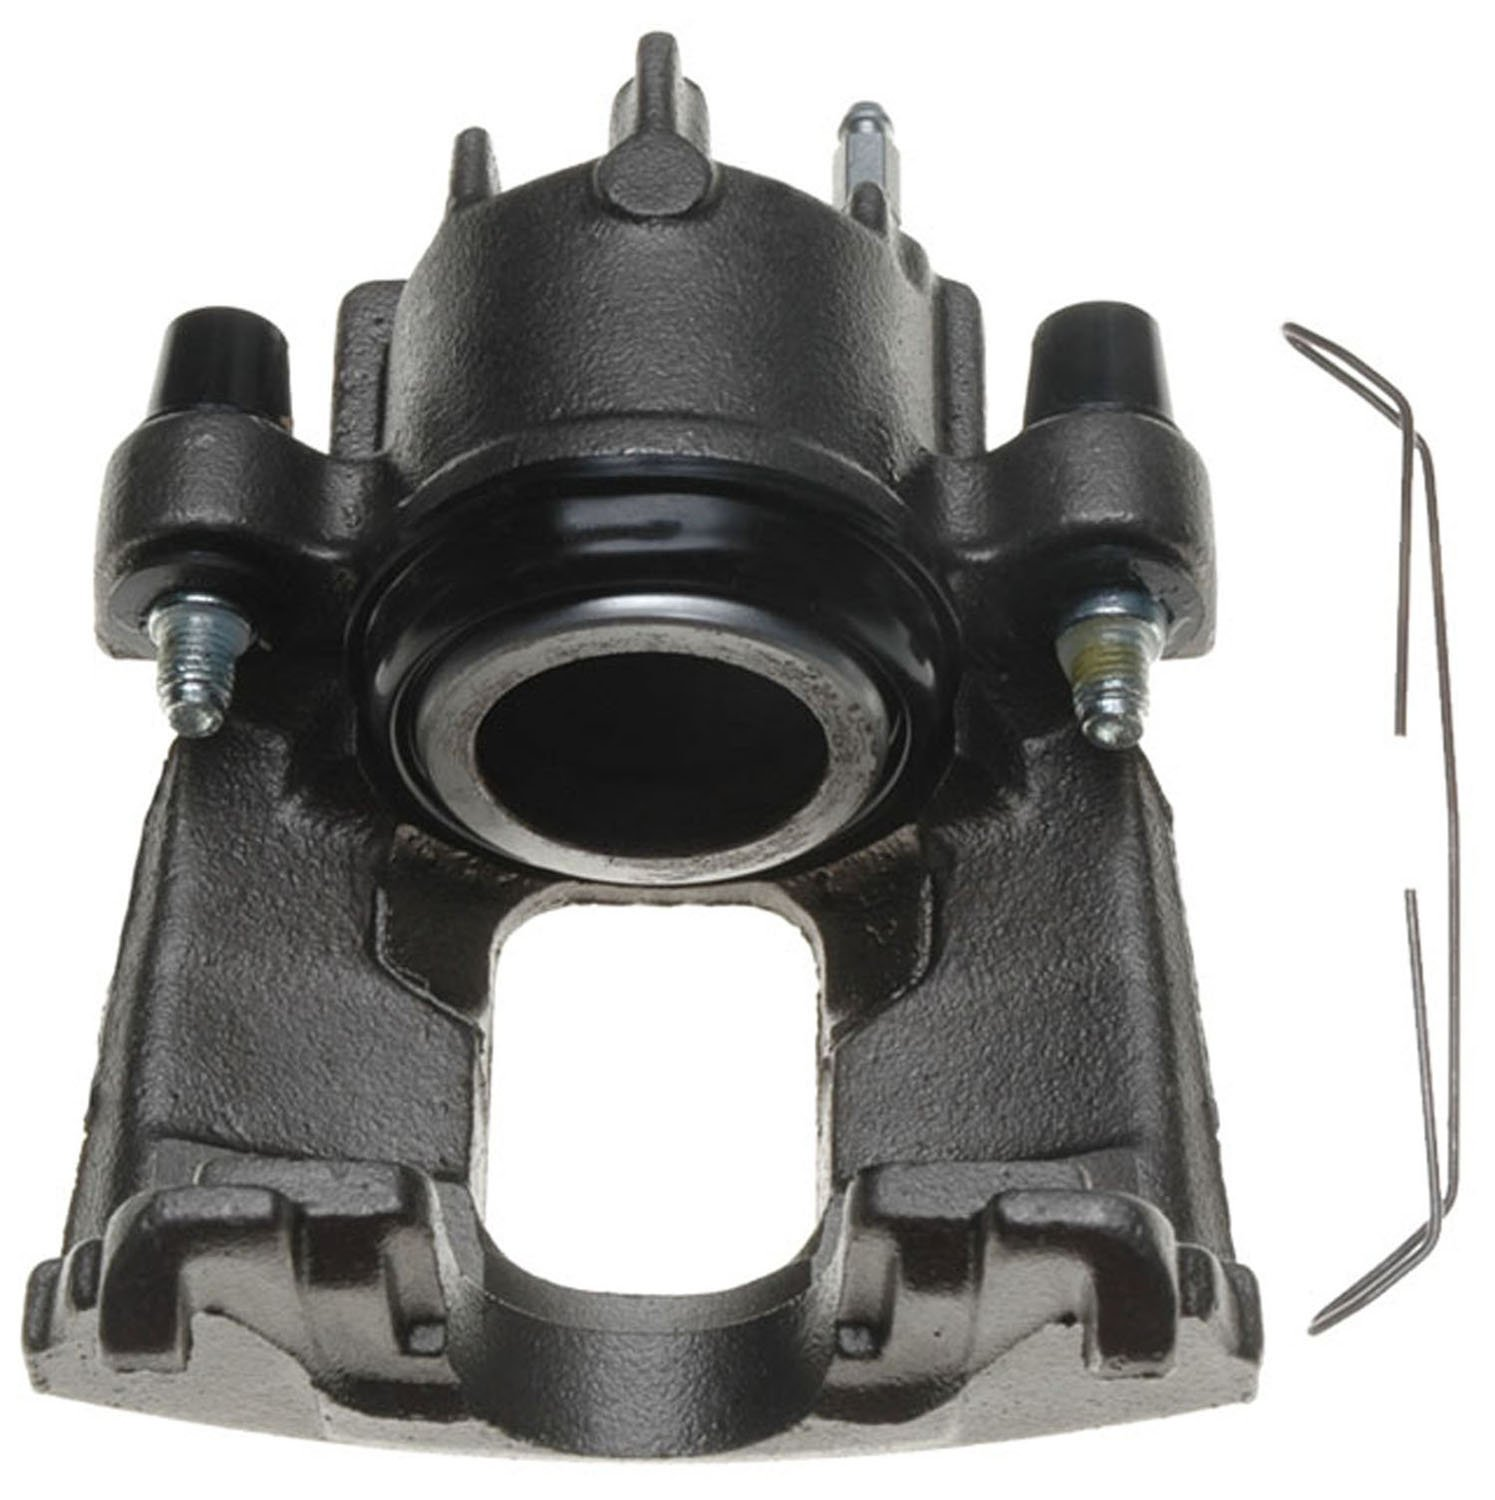 Friction Ready Non-Coated ACDelco 18FR1830 Professional Front Passenger Side Disc Brake Caliper Assembly without Pads Remanufactured